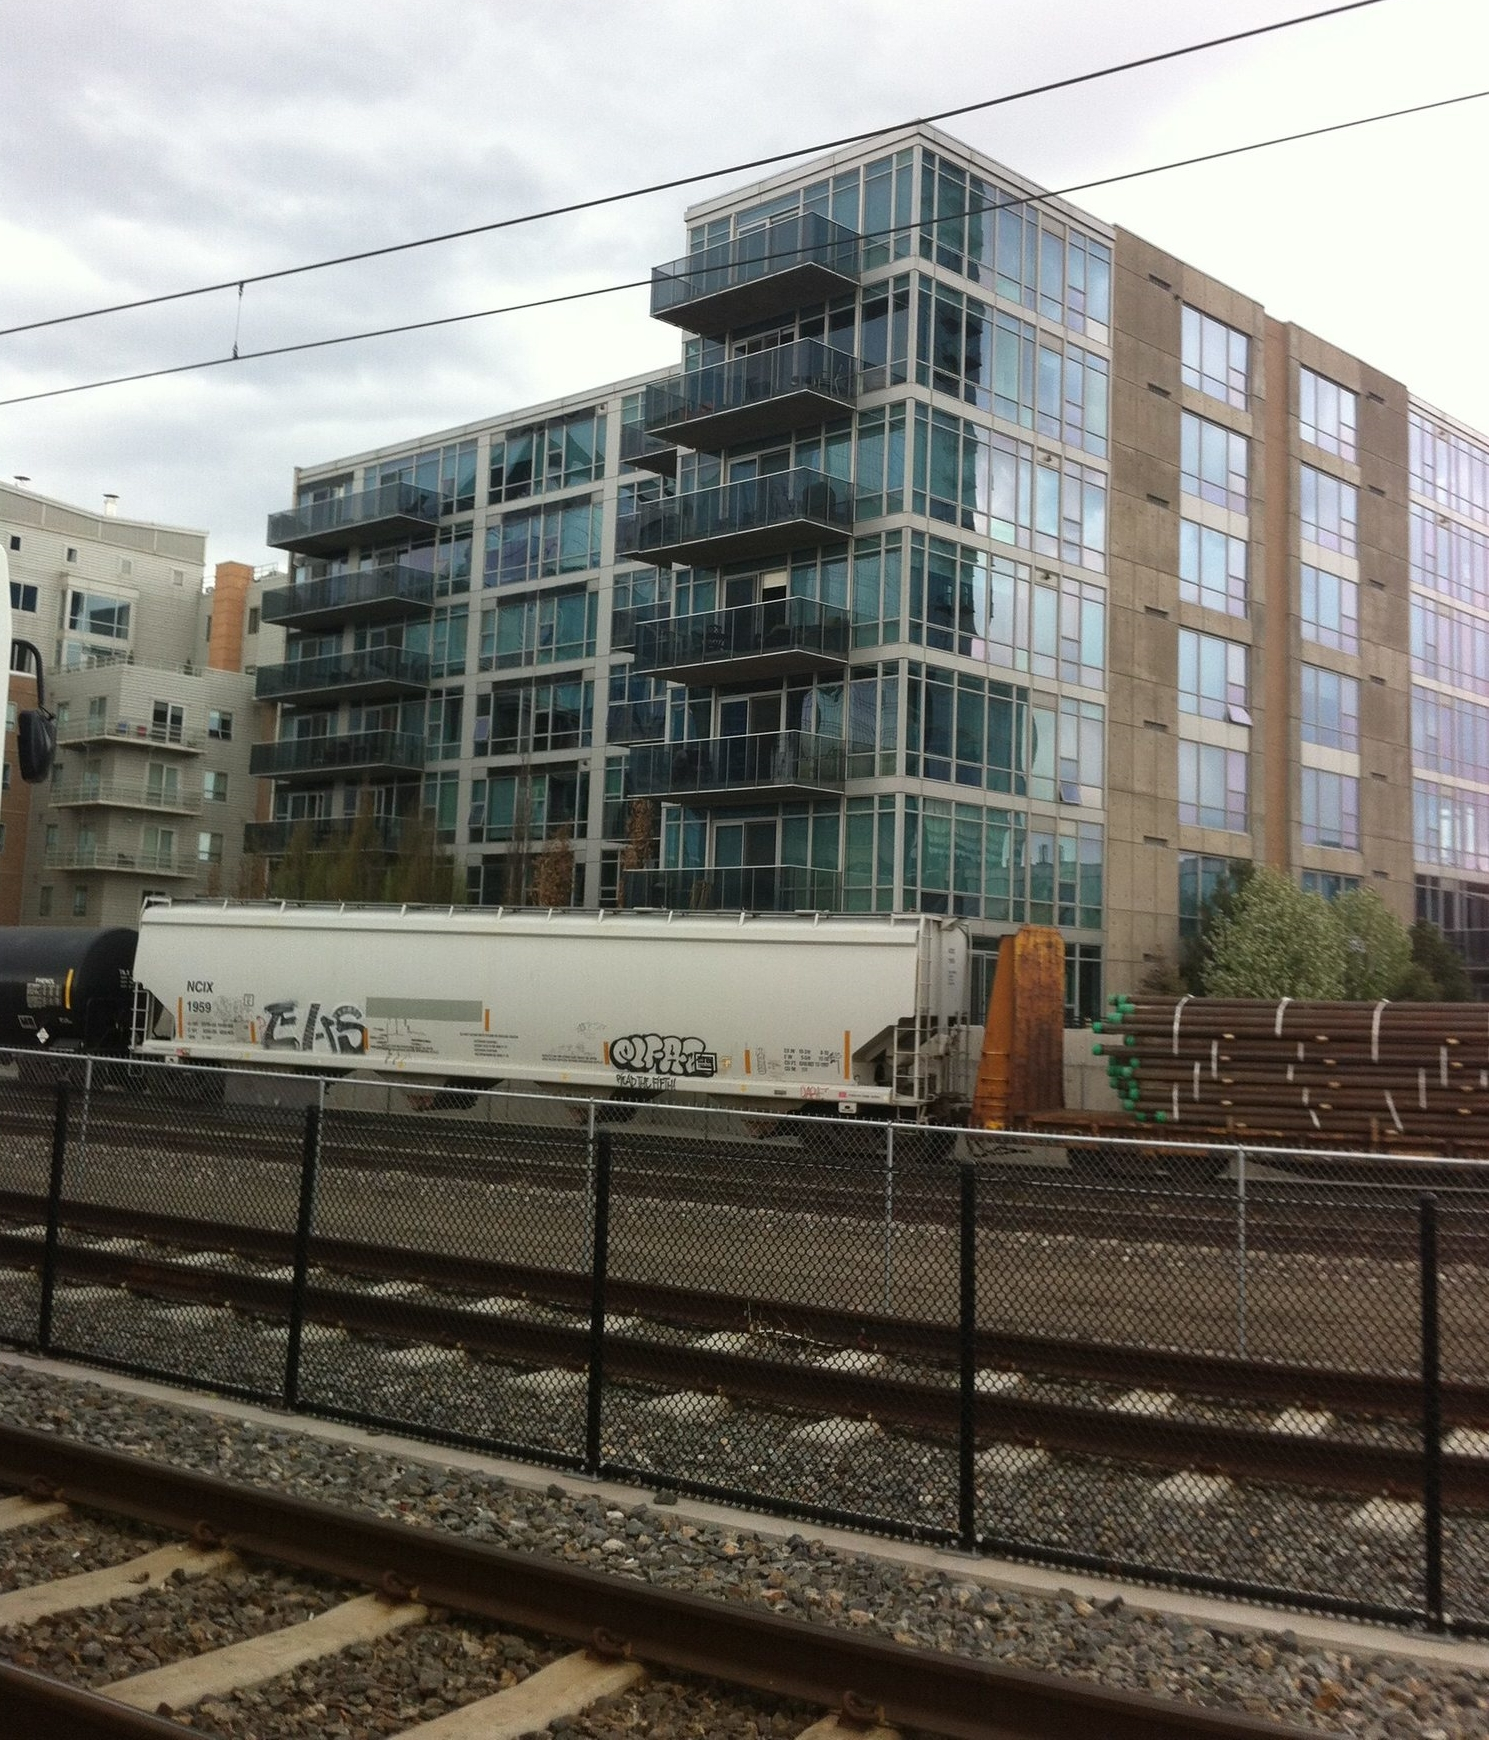 One of several mid-rise condos along Denver's downtown railway tracks.